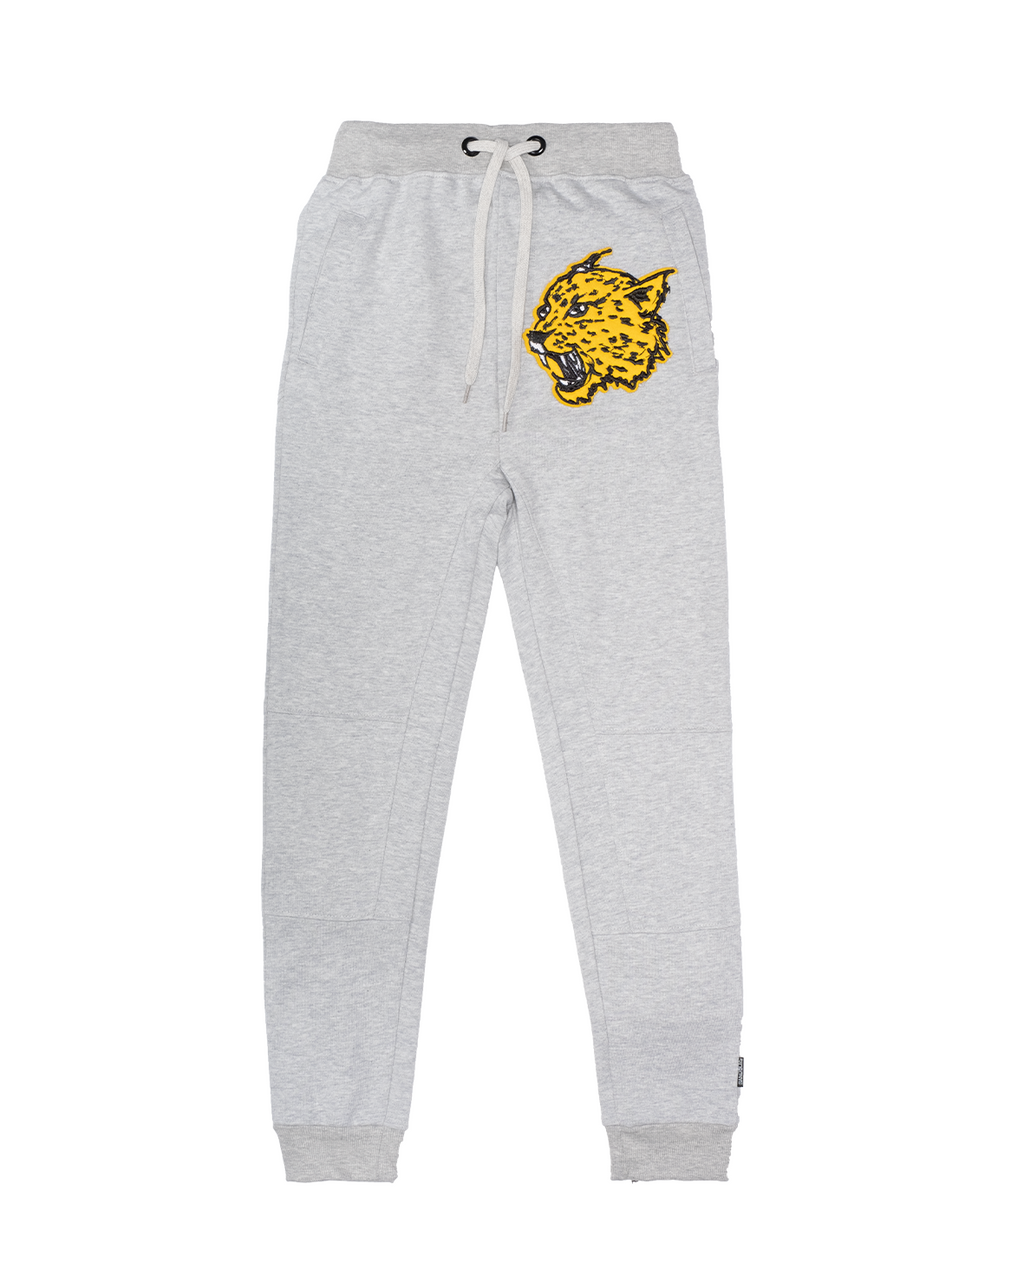 Band of Boys - Bandits - Fang Panel Trackie - Marle Grey